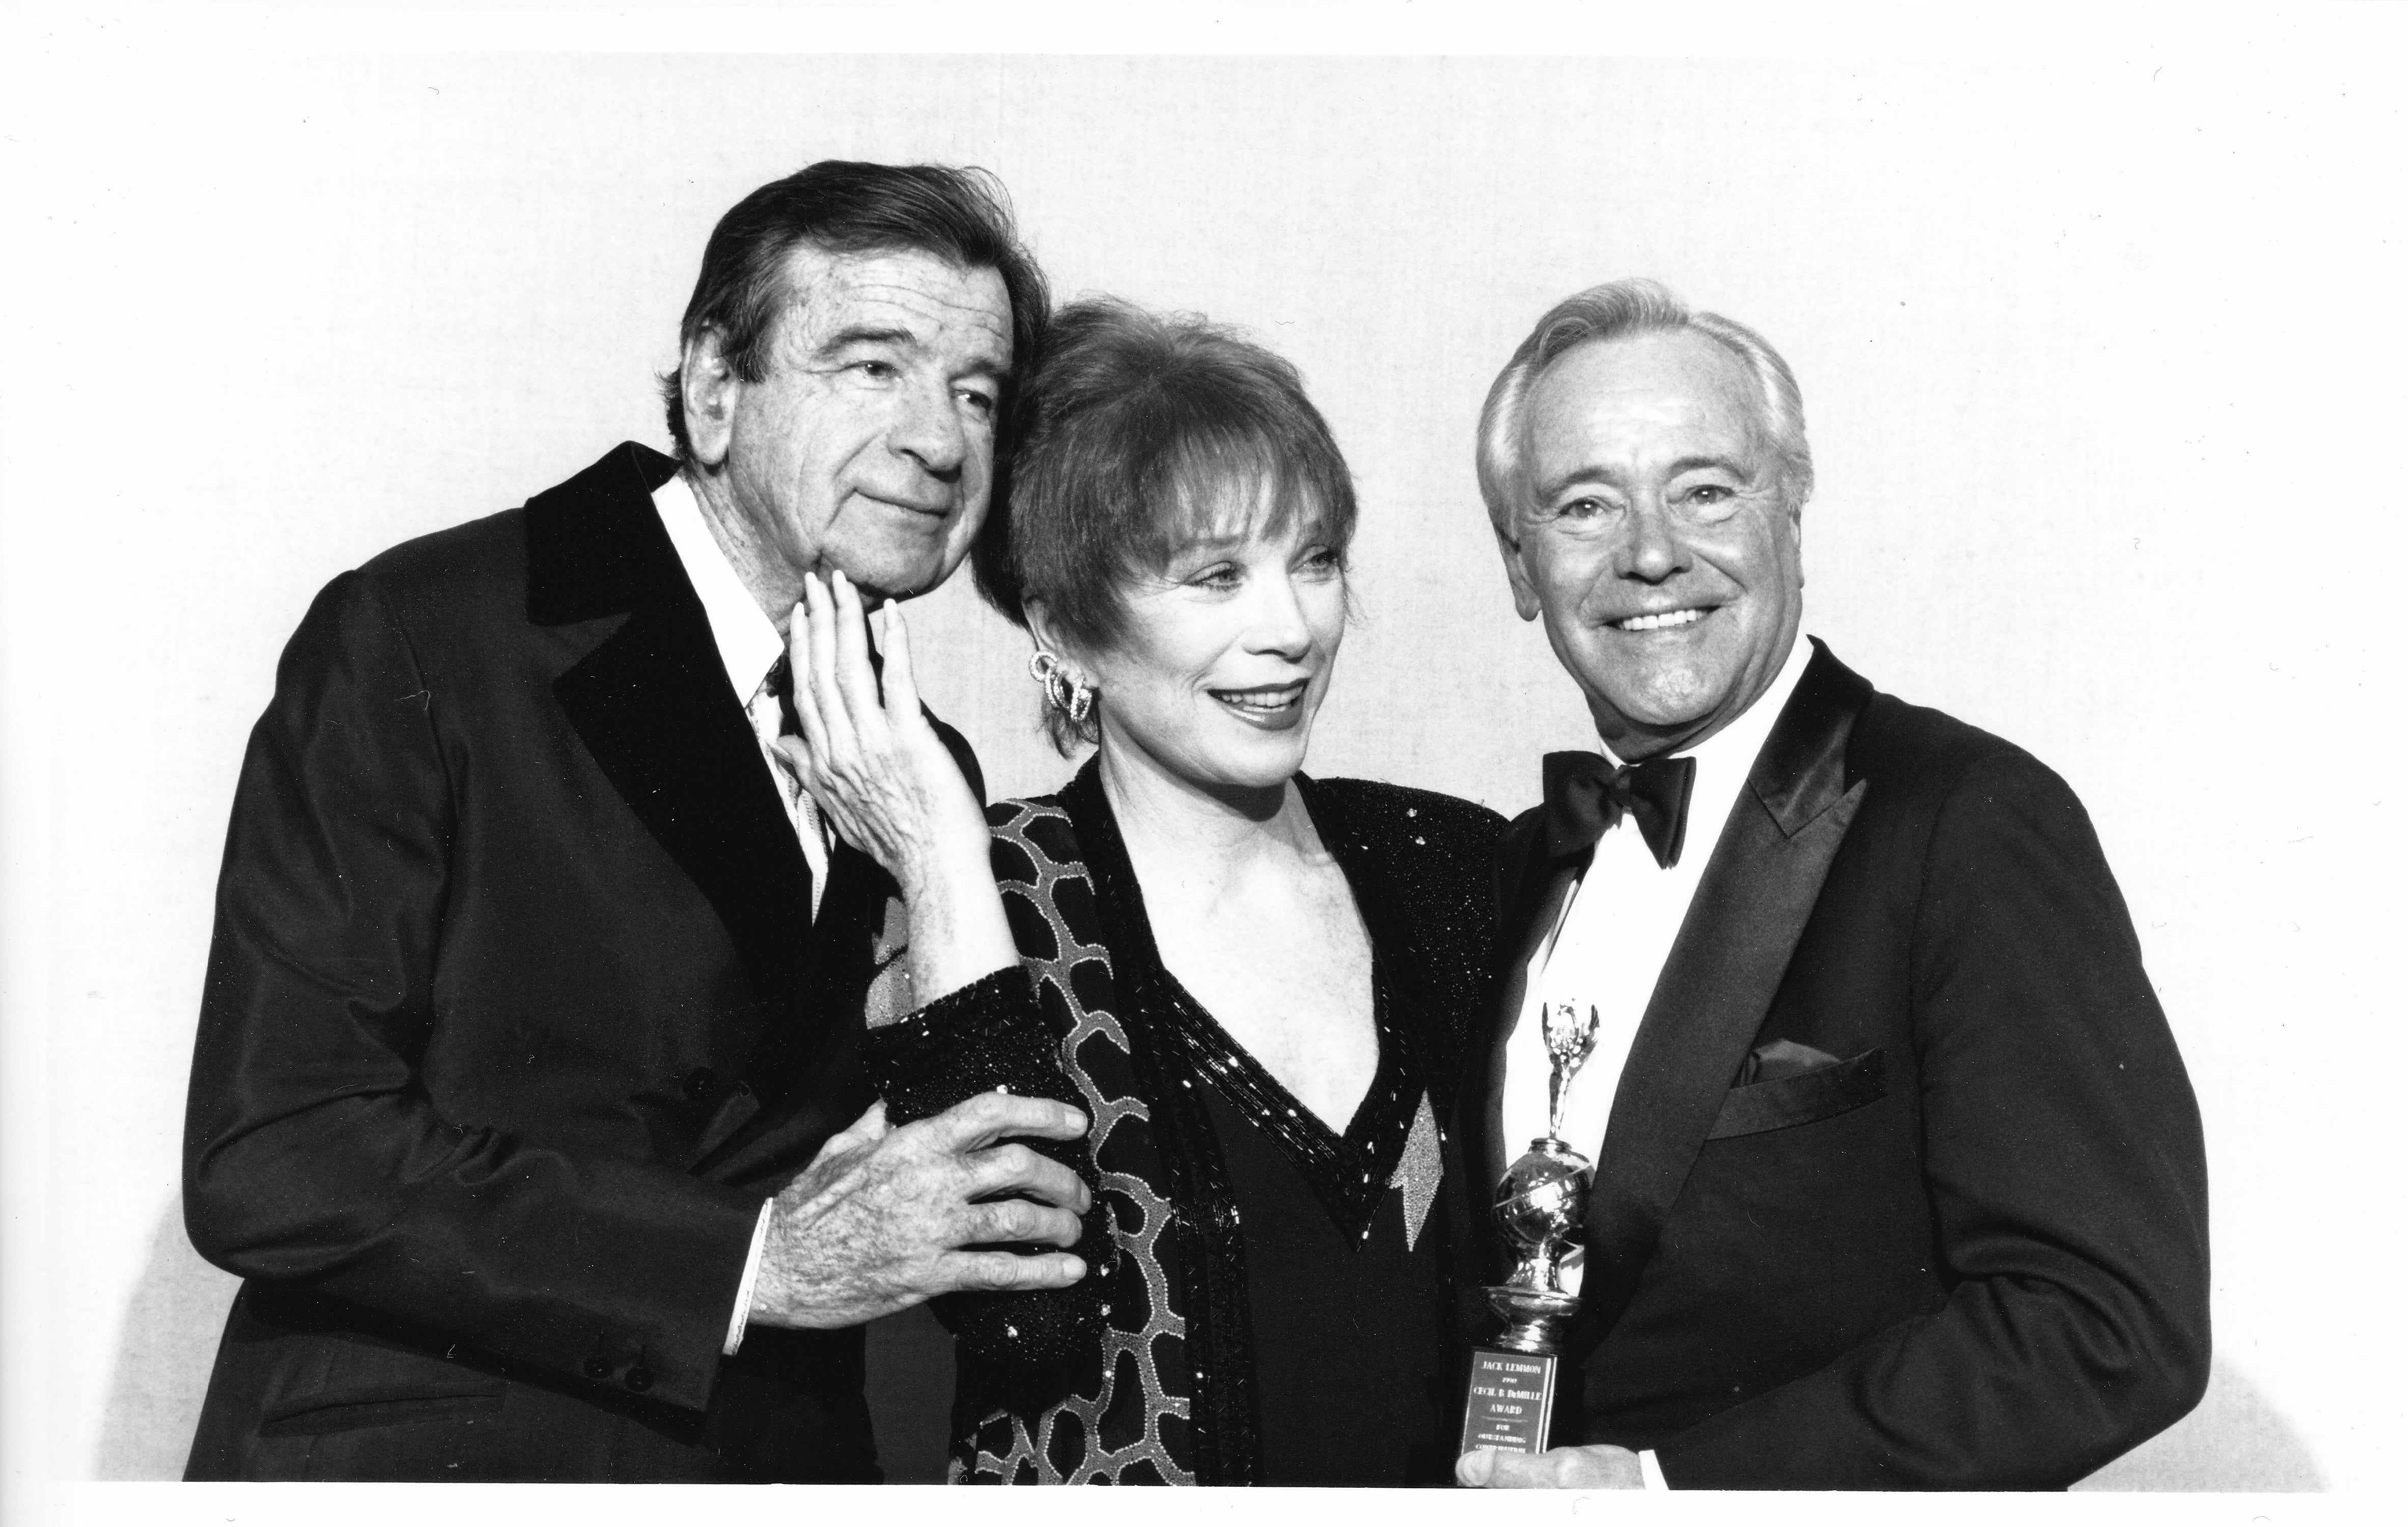 Jack Lemmon with WAler Matthau and Shirley MacLaine at the 1991 Golden Globes